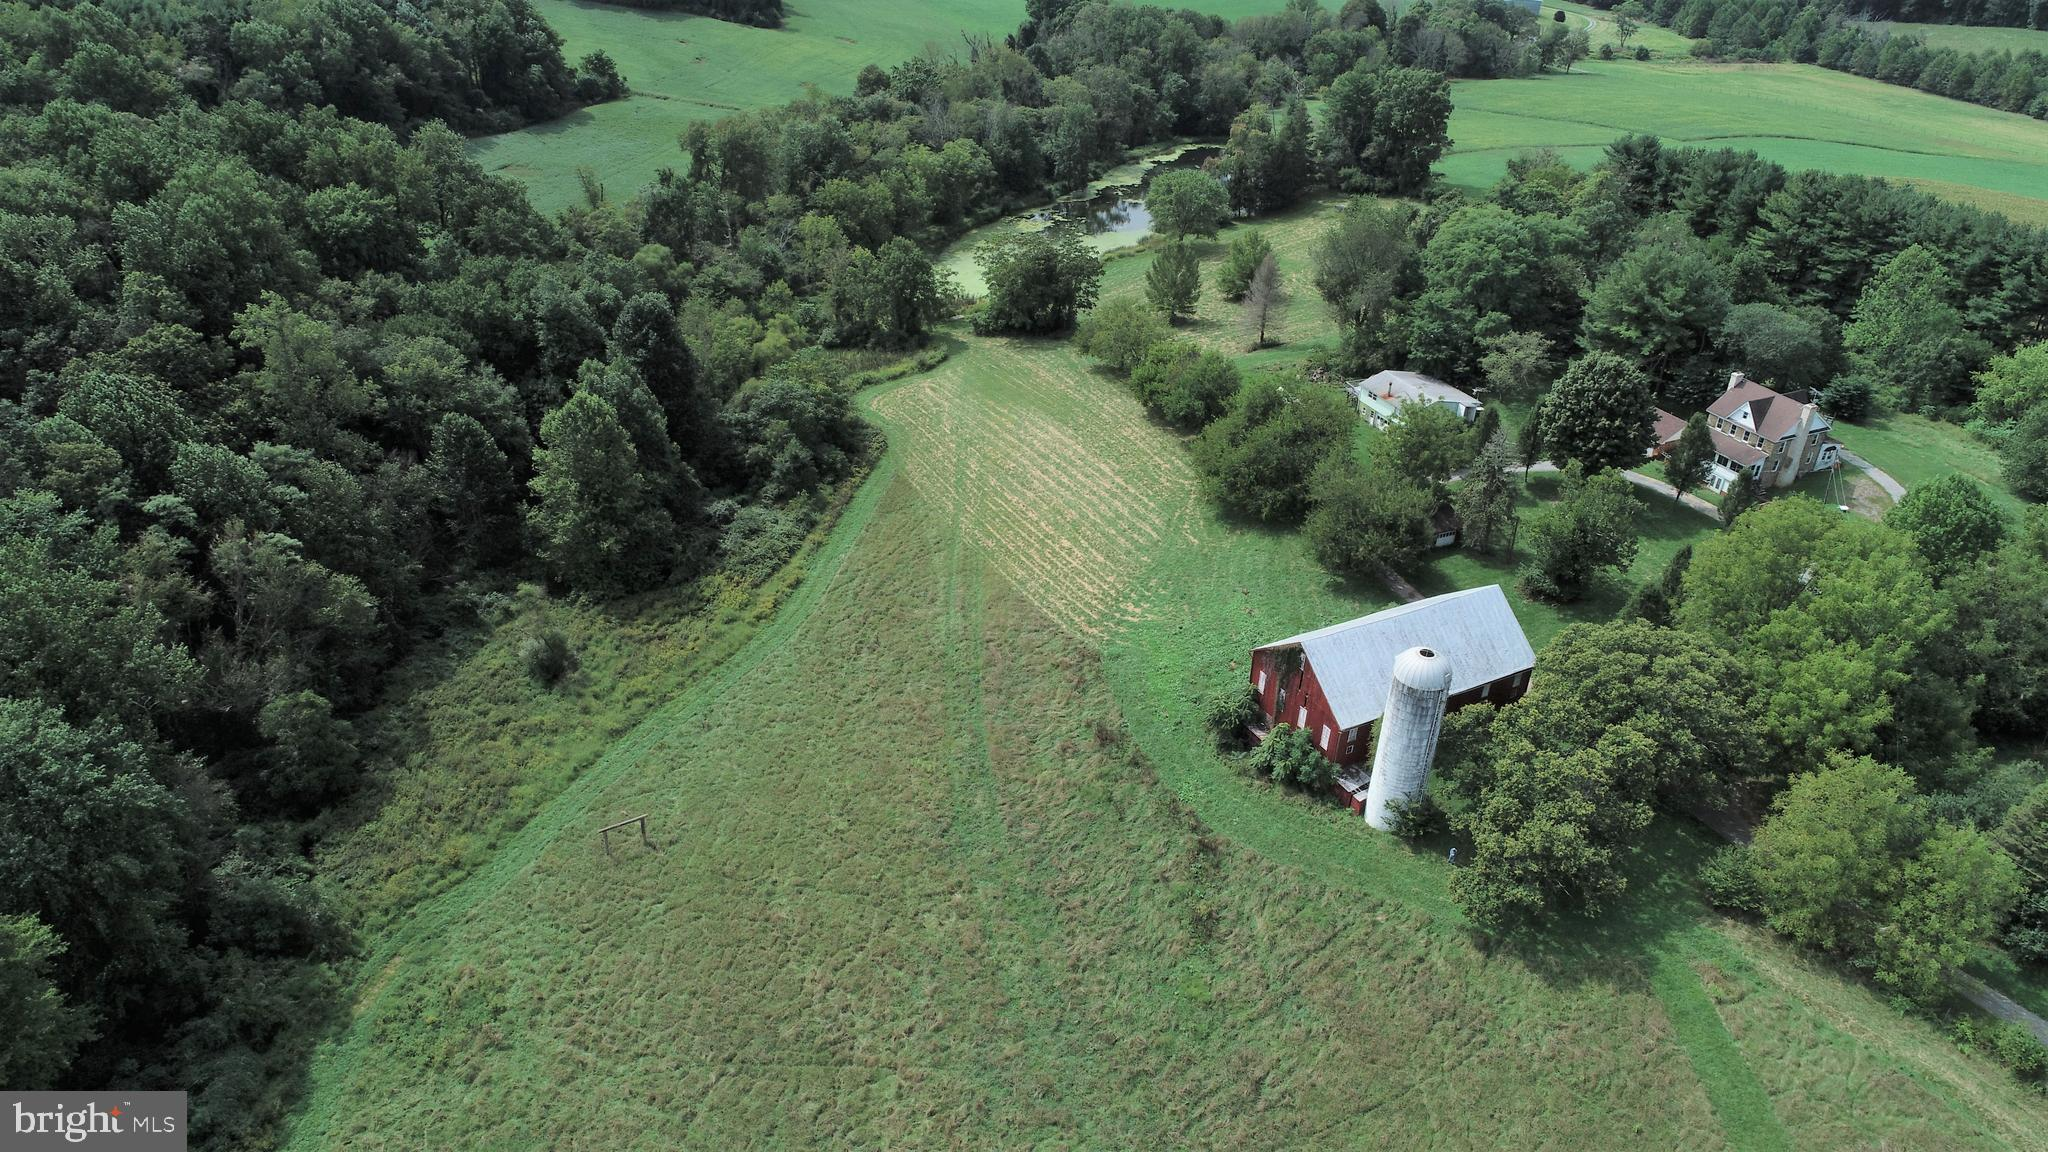 Incredible opportunity to own this wonderful farm. The main house dates back to the 19th century and